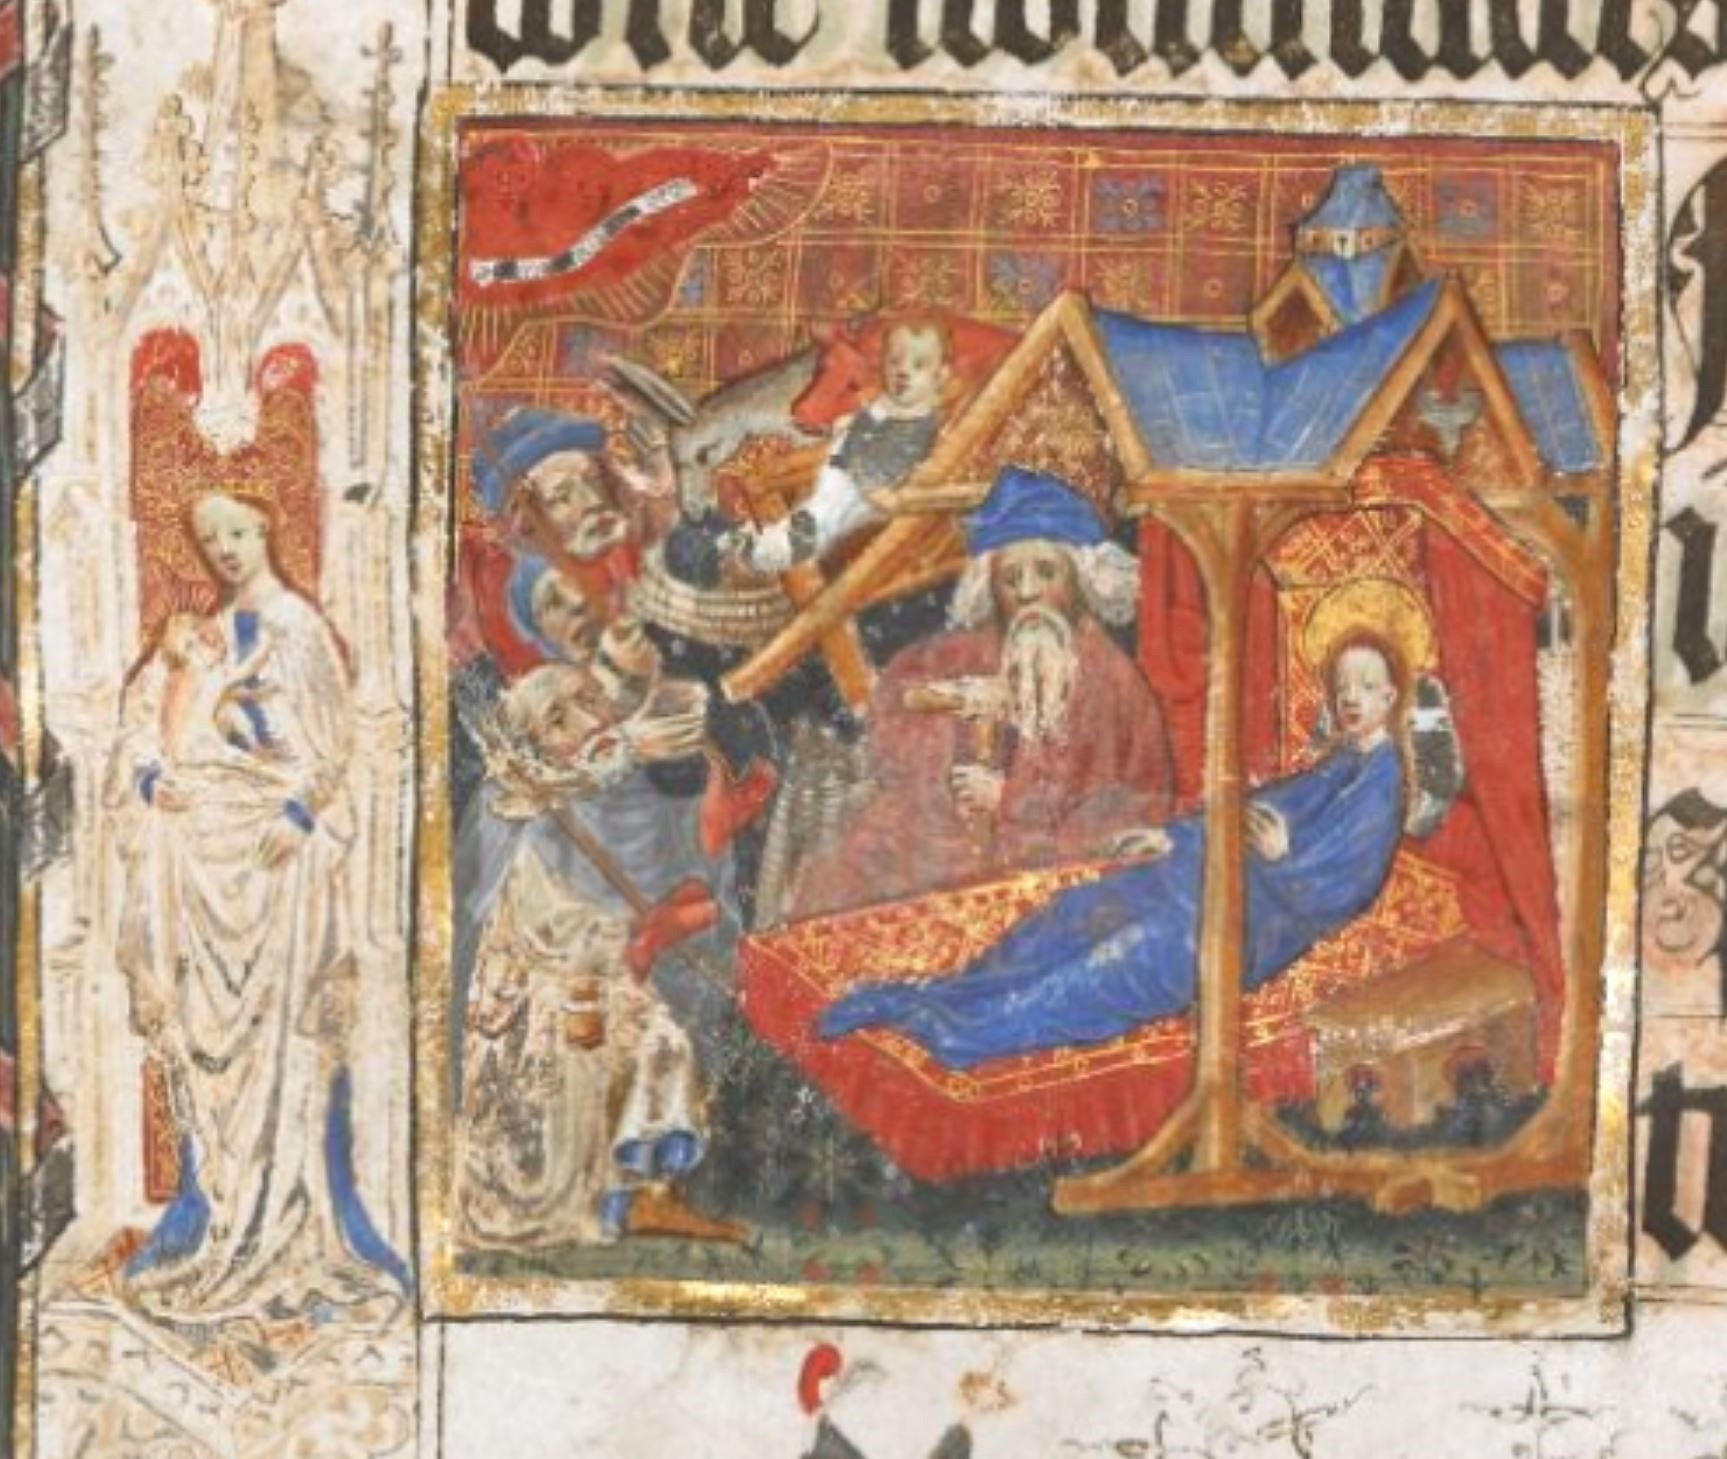 Adoration des Bergers Lovell Lectionary 1400-10 BL Harley 7026 fol 6r